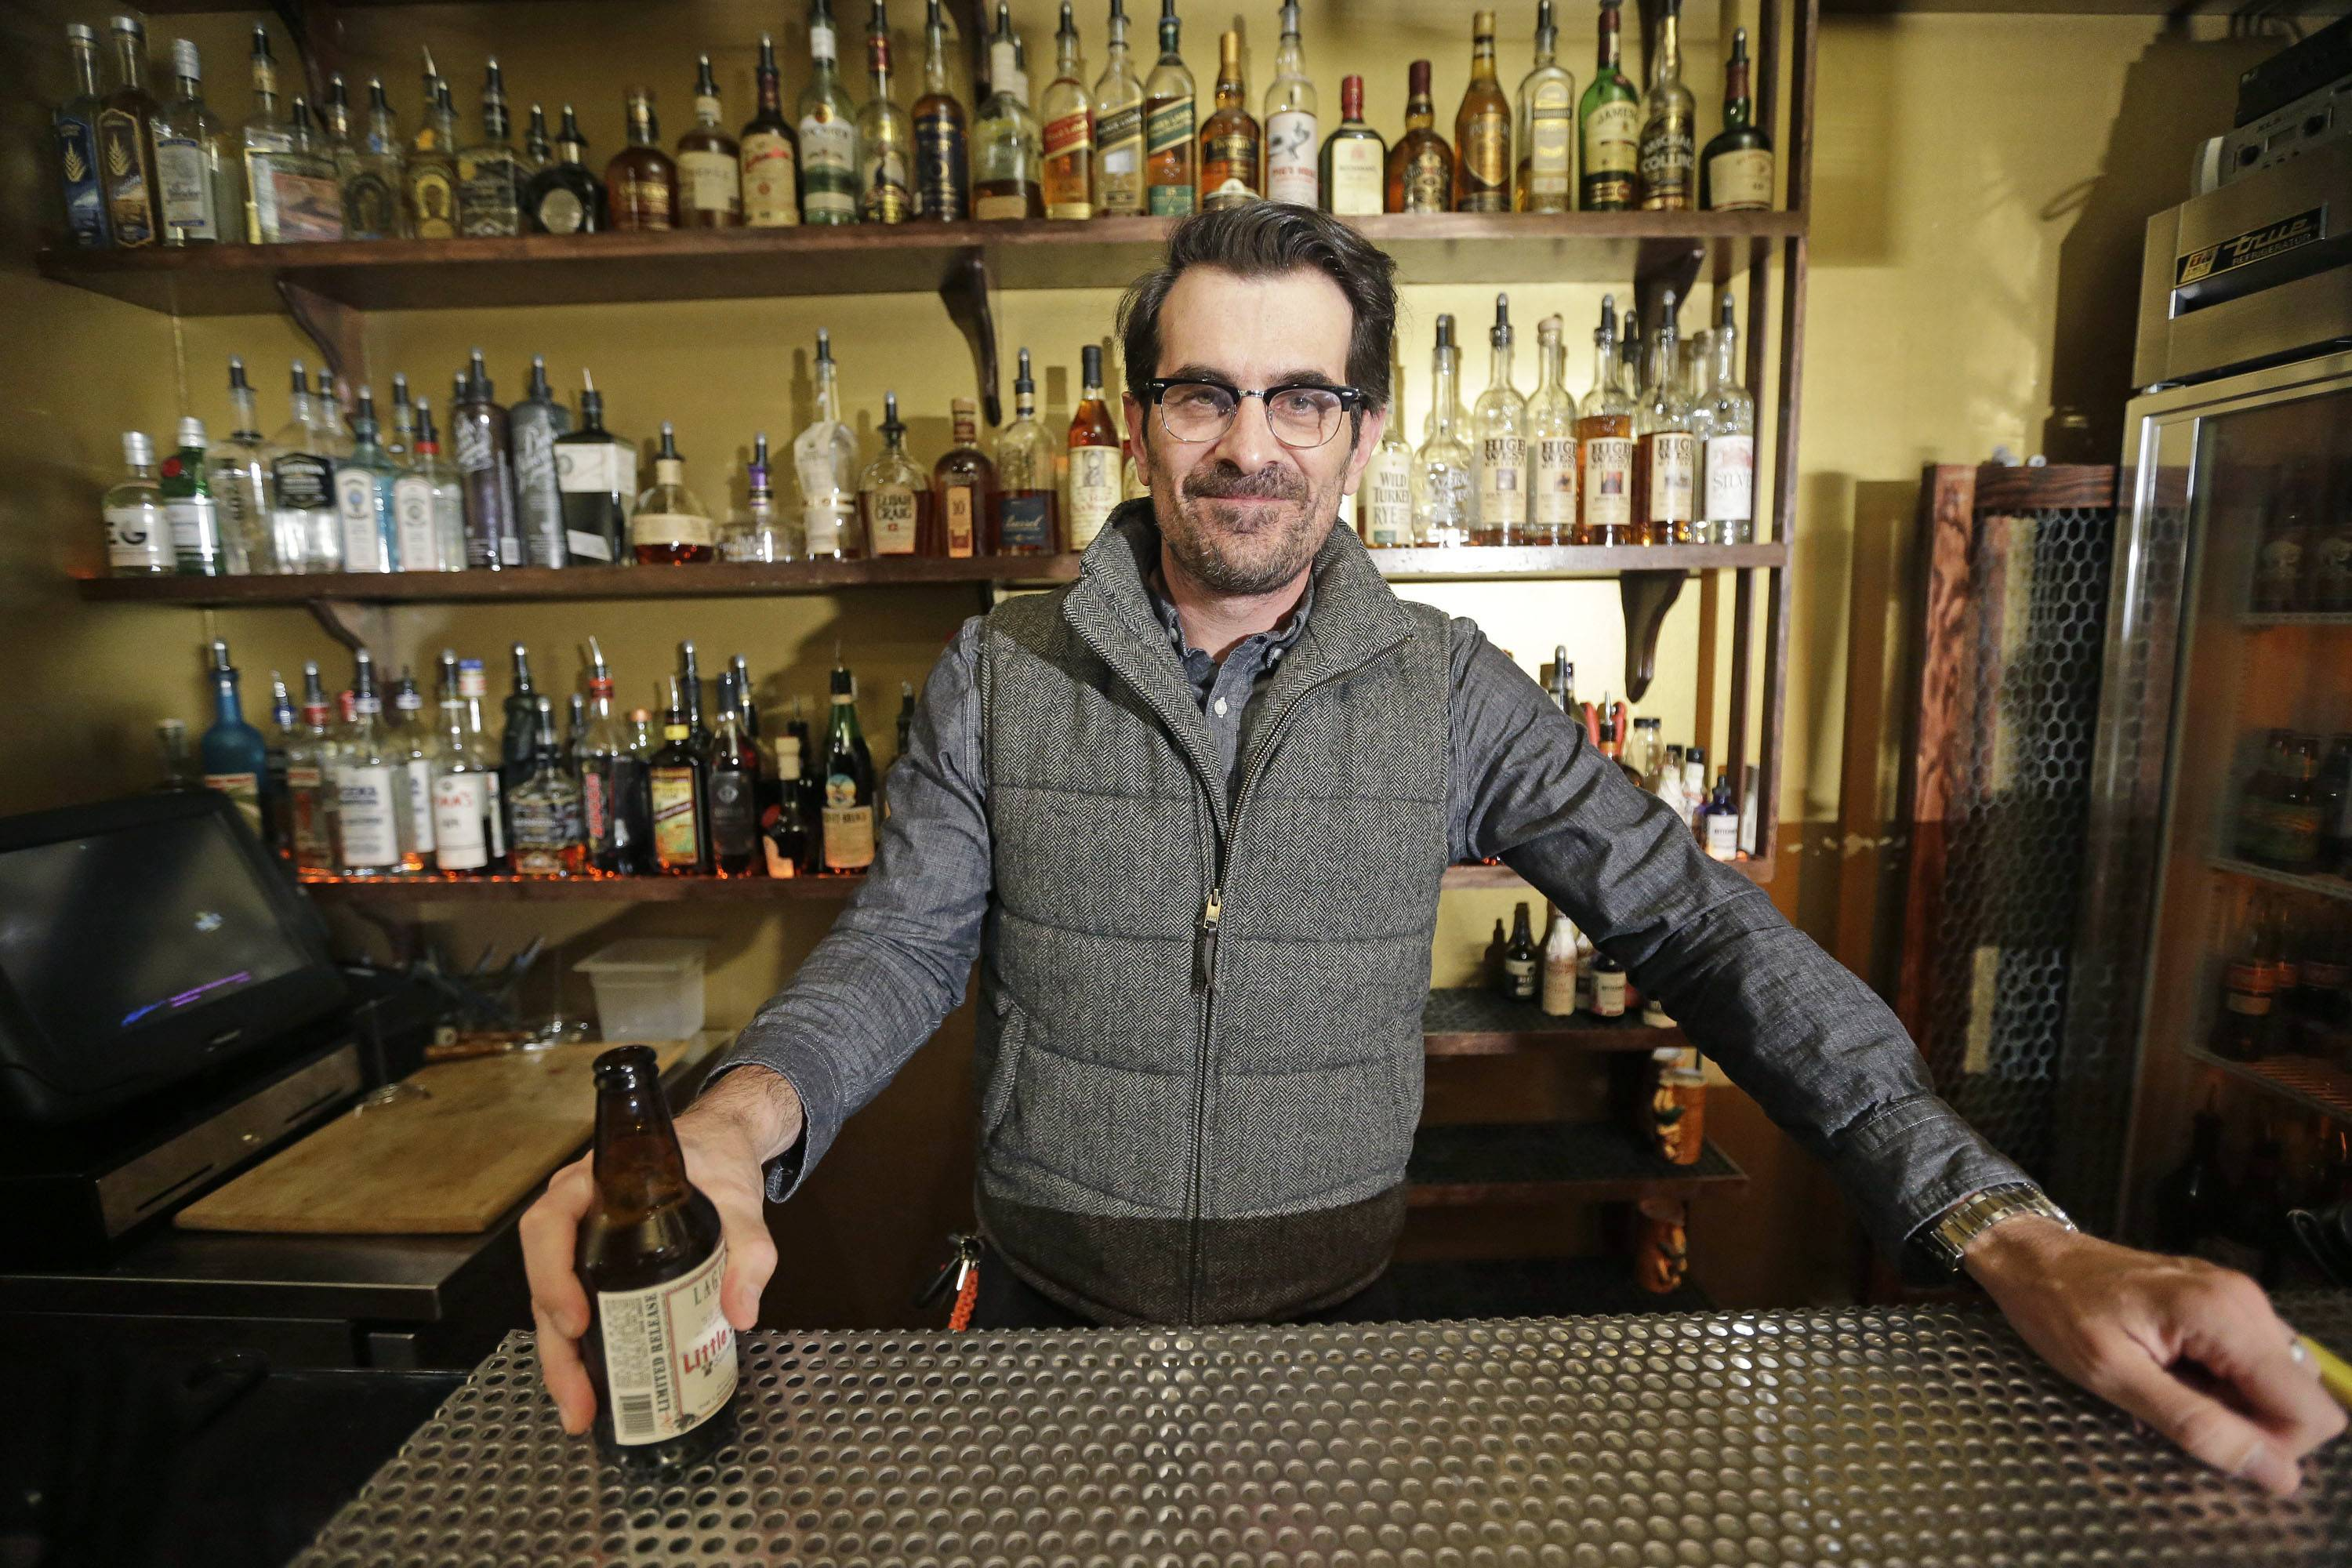 "Actor Ty Burrell, who plays bumbling dad Phil Dunphy on ABC's ""Modern Family,"" has a beer at Bar X, the cocktail bar he co-owns in Salt Lake City. Burrell just opened Beer Bar, a beer garden-like eatery next door to Bar X that serves 150 beers paired up with an array of house-made bratwursts, local breads and Belgian fries."